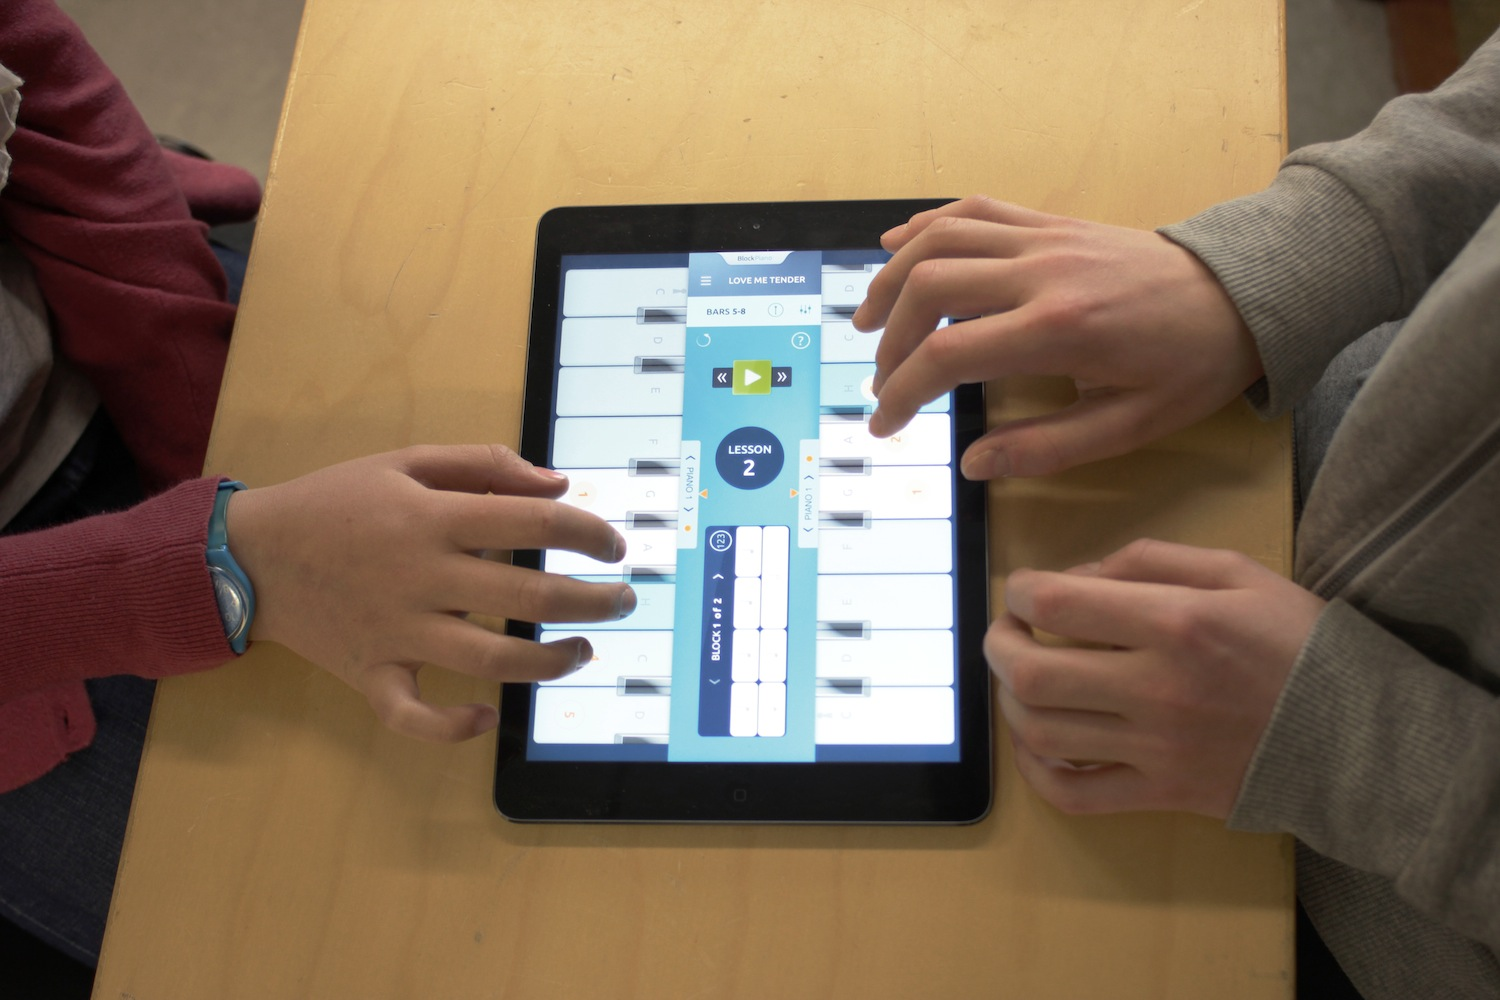 Learn to play the piano on your ipad. With BlockPiano piano lessons one to three persons can play on one iPad.